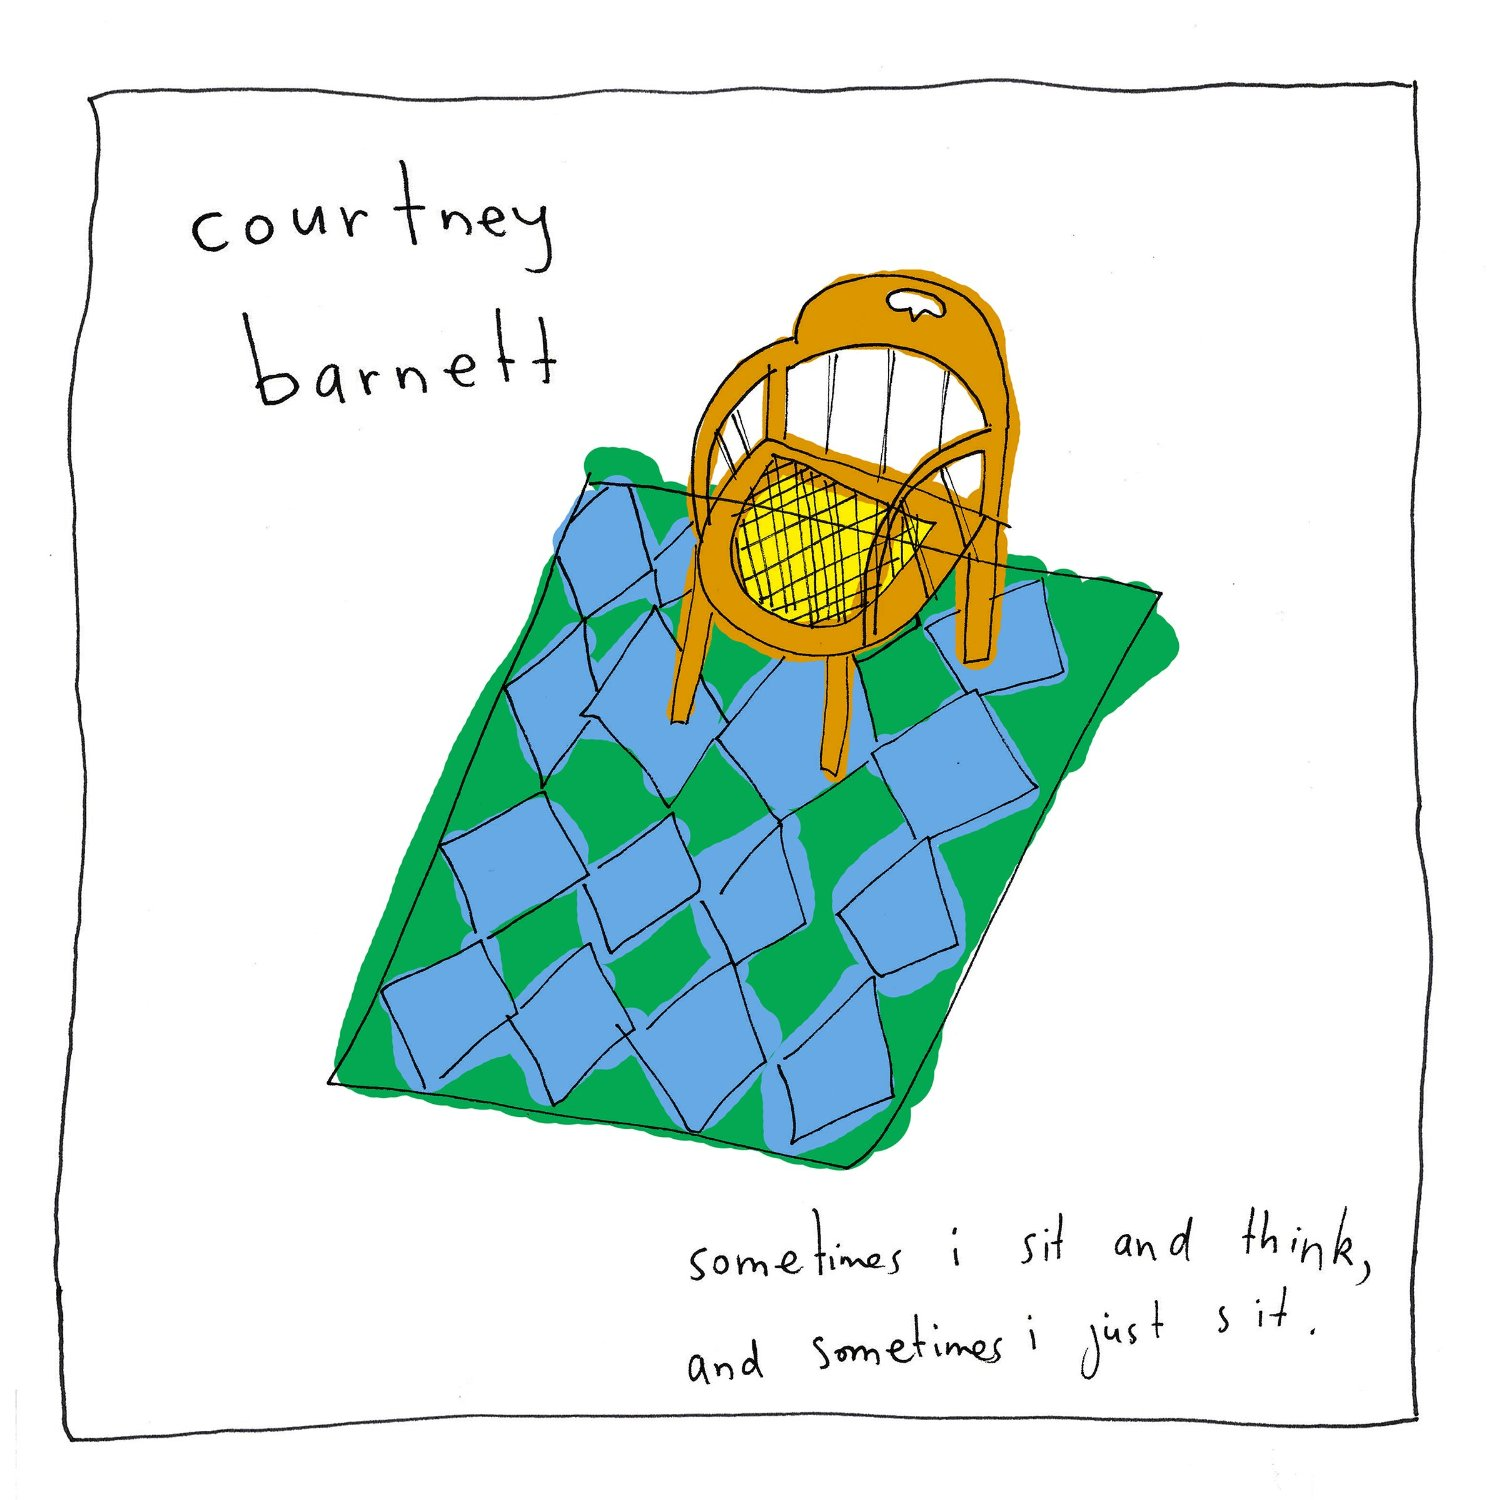 Courtney Barnett - Sometimes I Sit And Think, And Sometimes I Just Sit [LP]